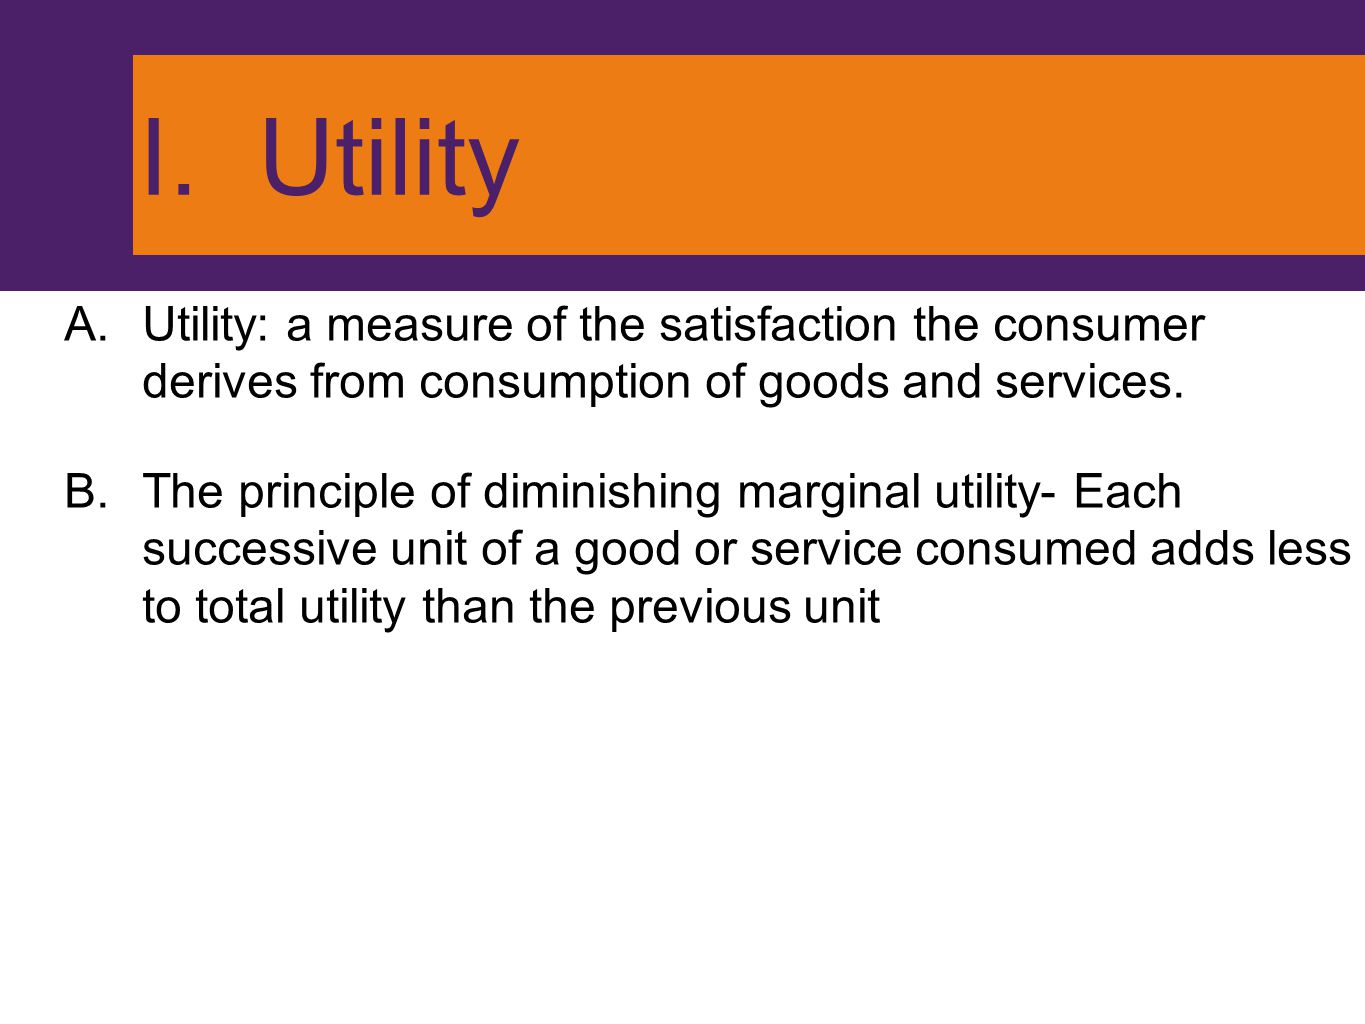 I. Utility Utility: a measure of the satisfaction the consumer derives from consumption of goods and services.